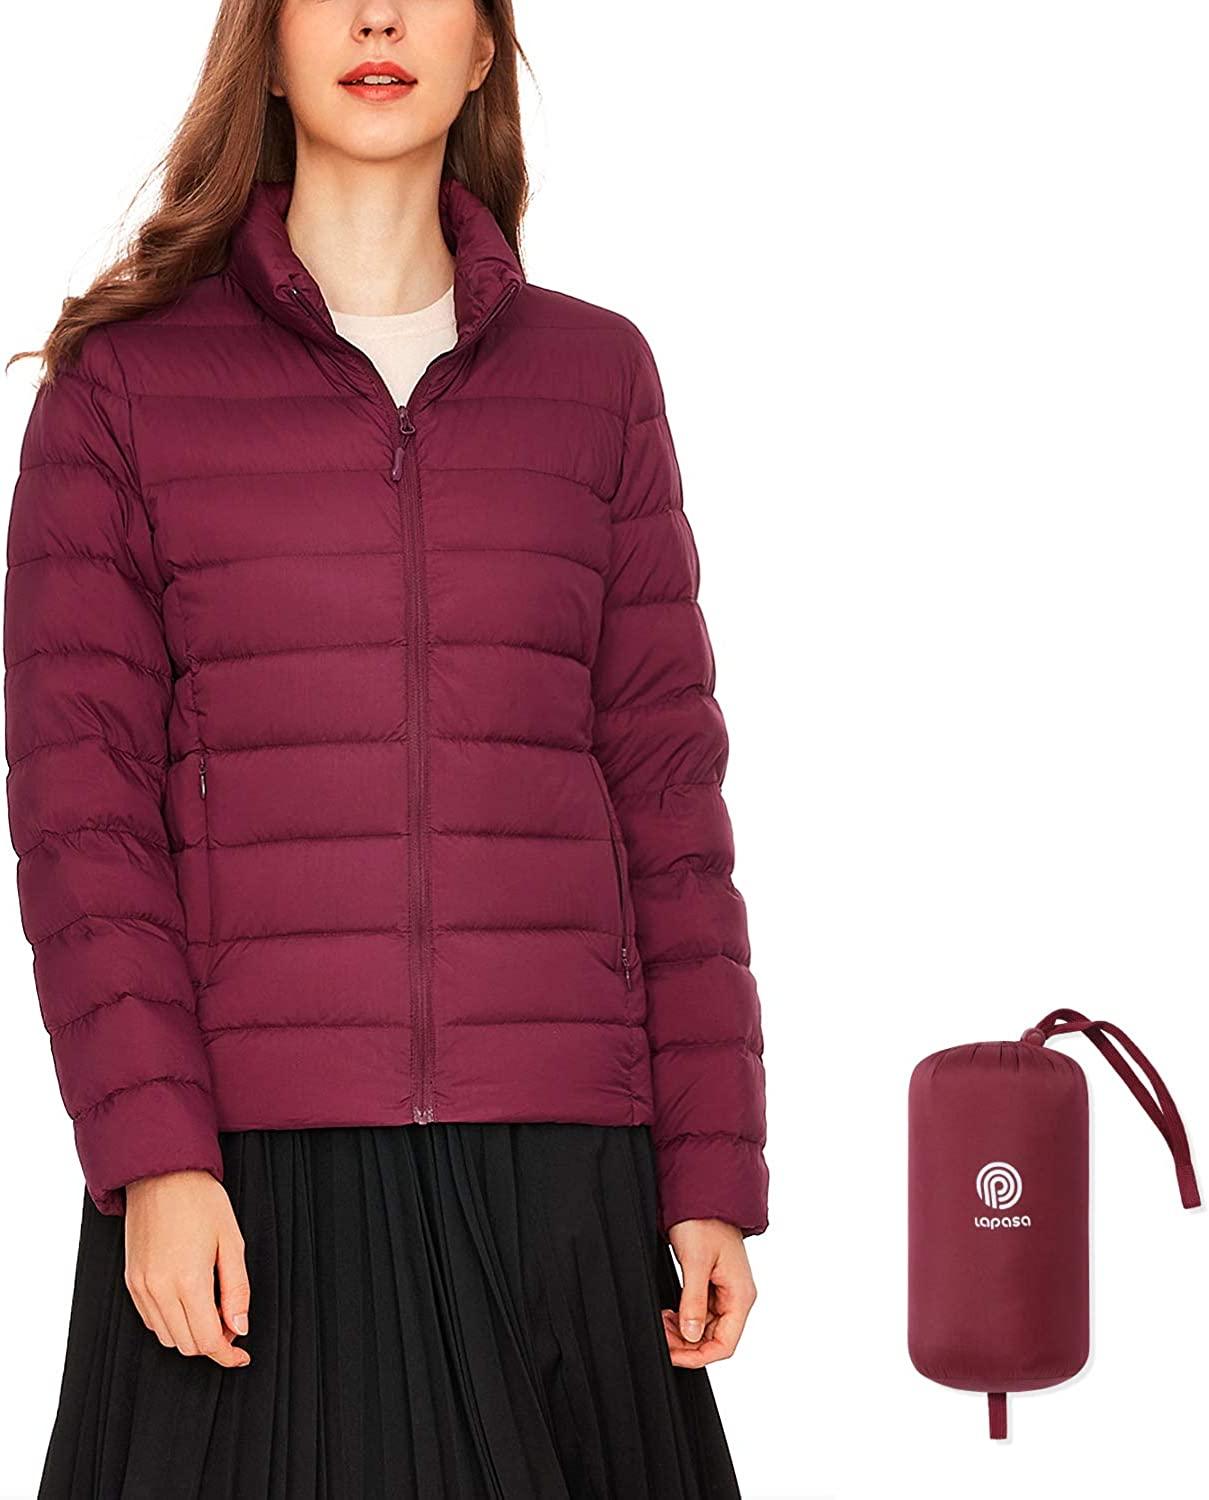 LAPASA Women's Be super welcome Lightweight Down Max 56% OFF Breathabl Water-Resistant Jacket